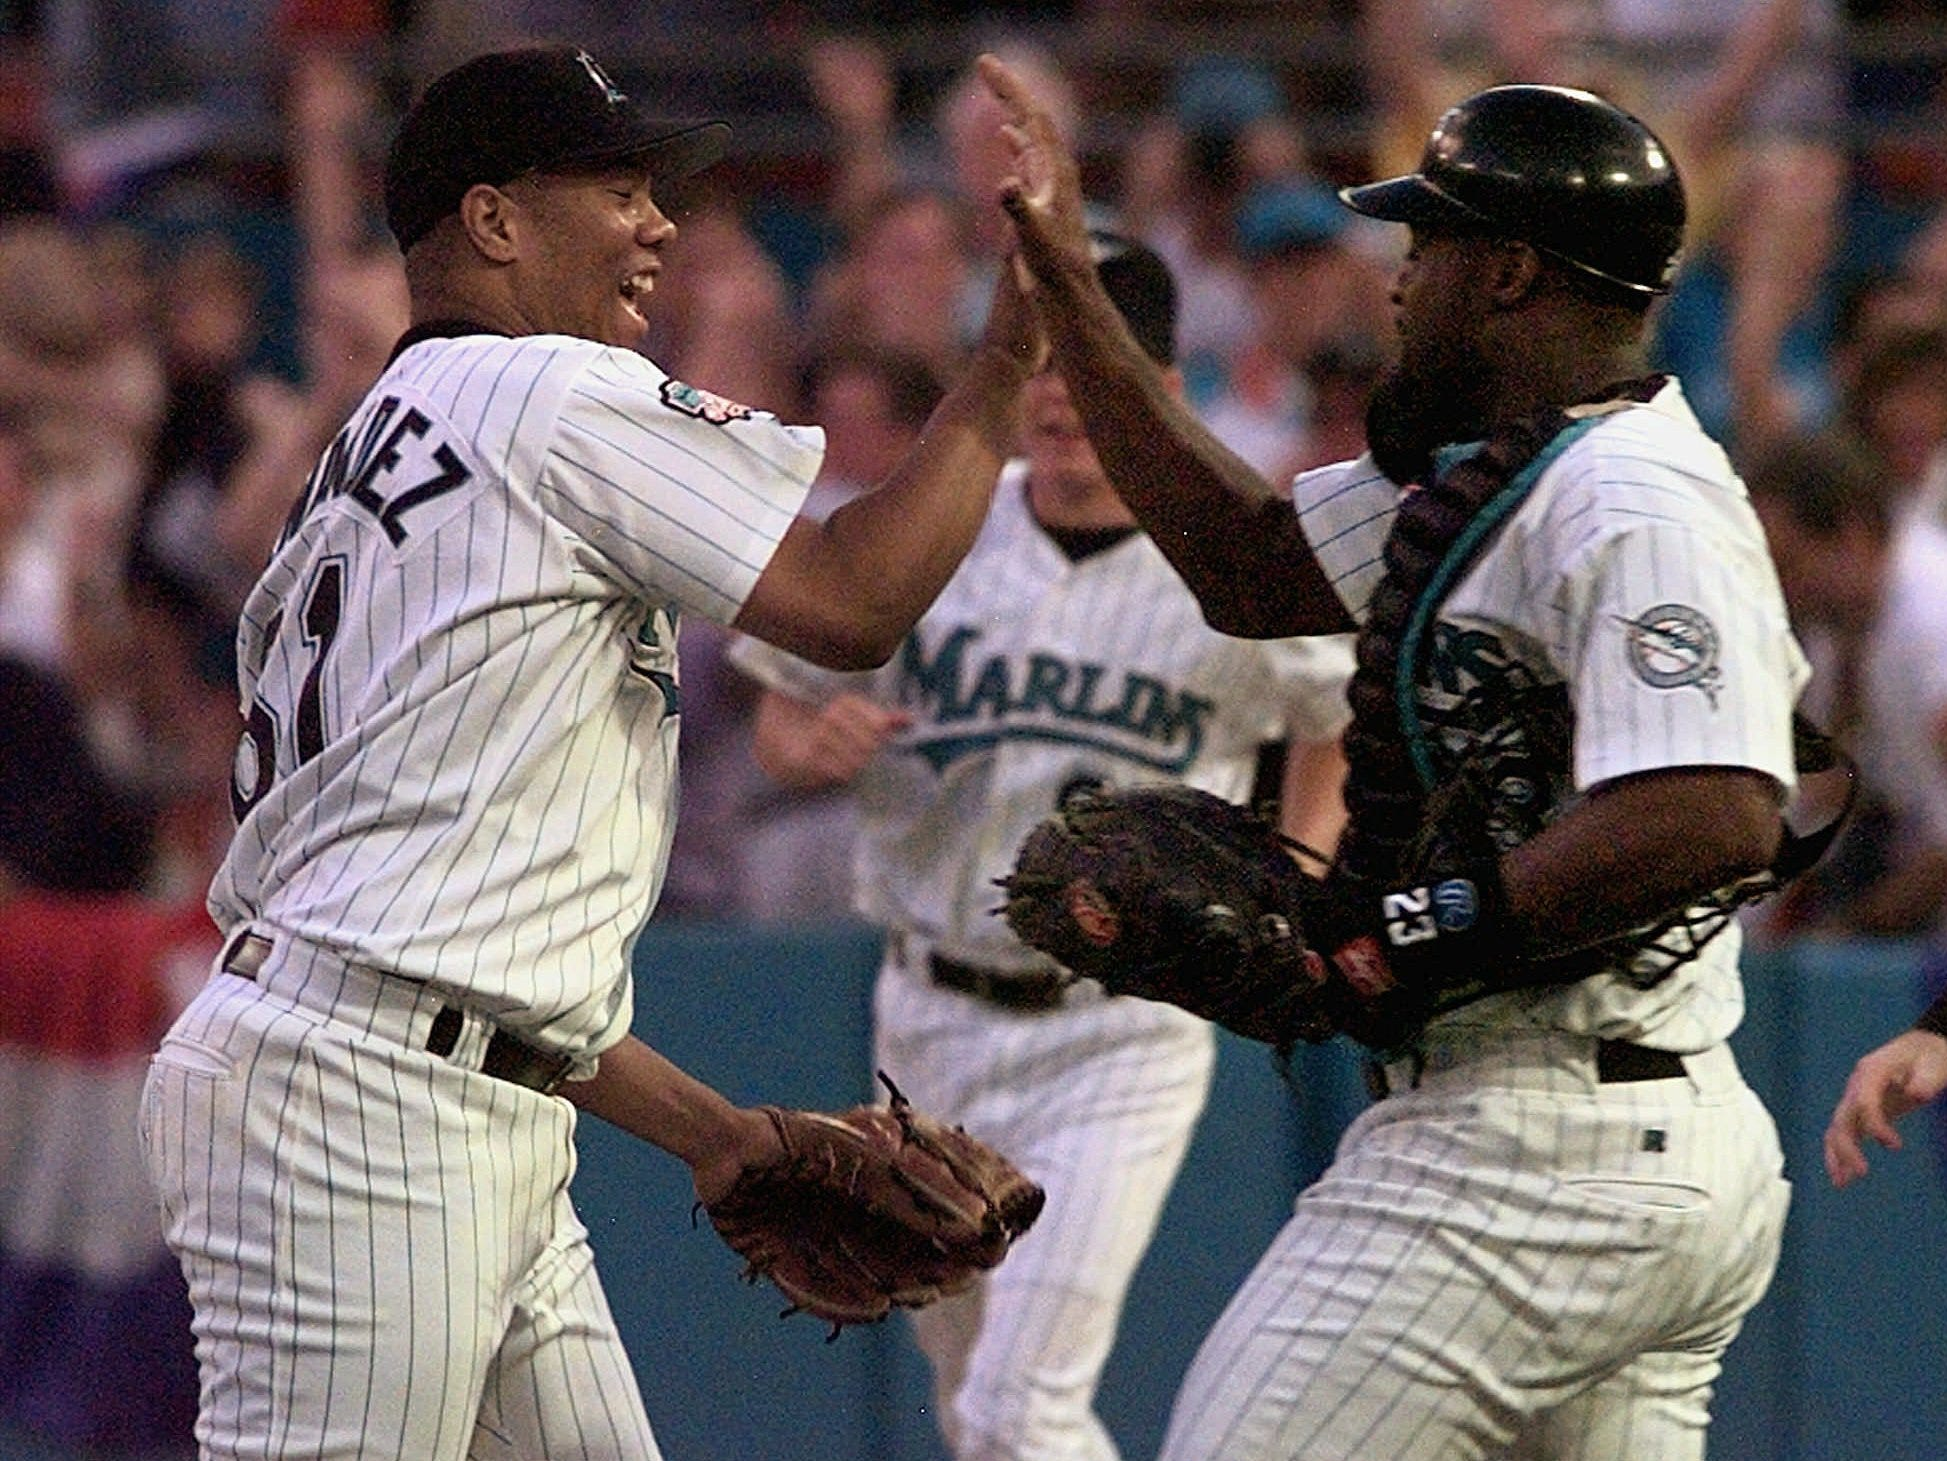 1997 NLCS Game 5: Marlins rookie Livan Hernandez struck out 15 in a complete-game win against the Braves.